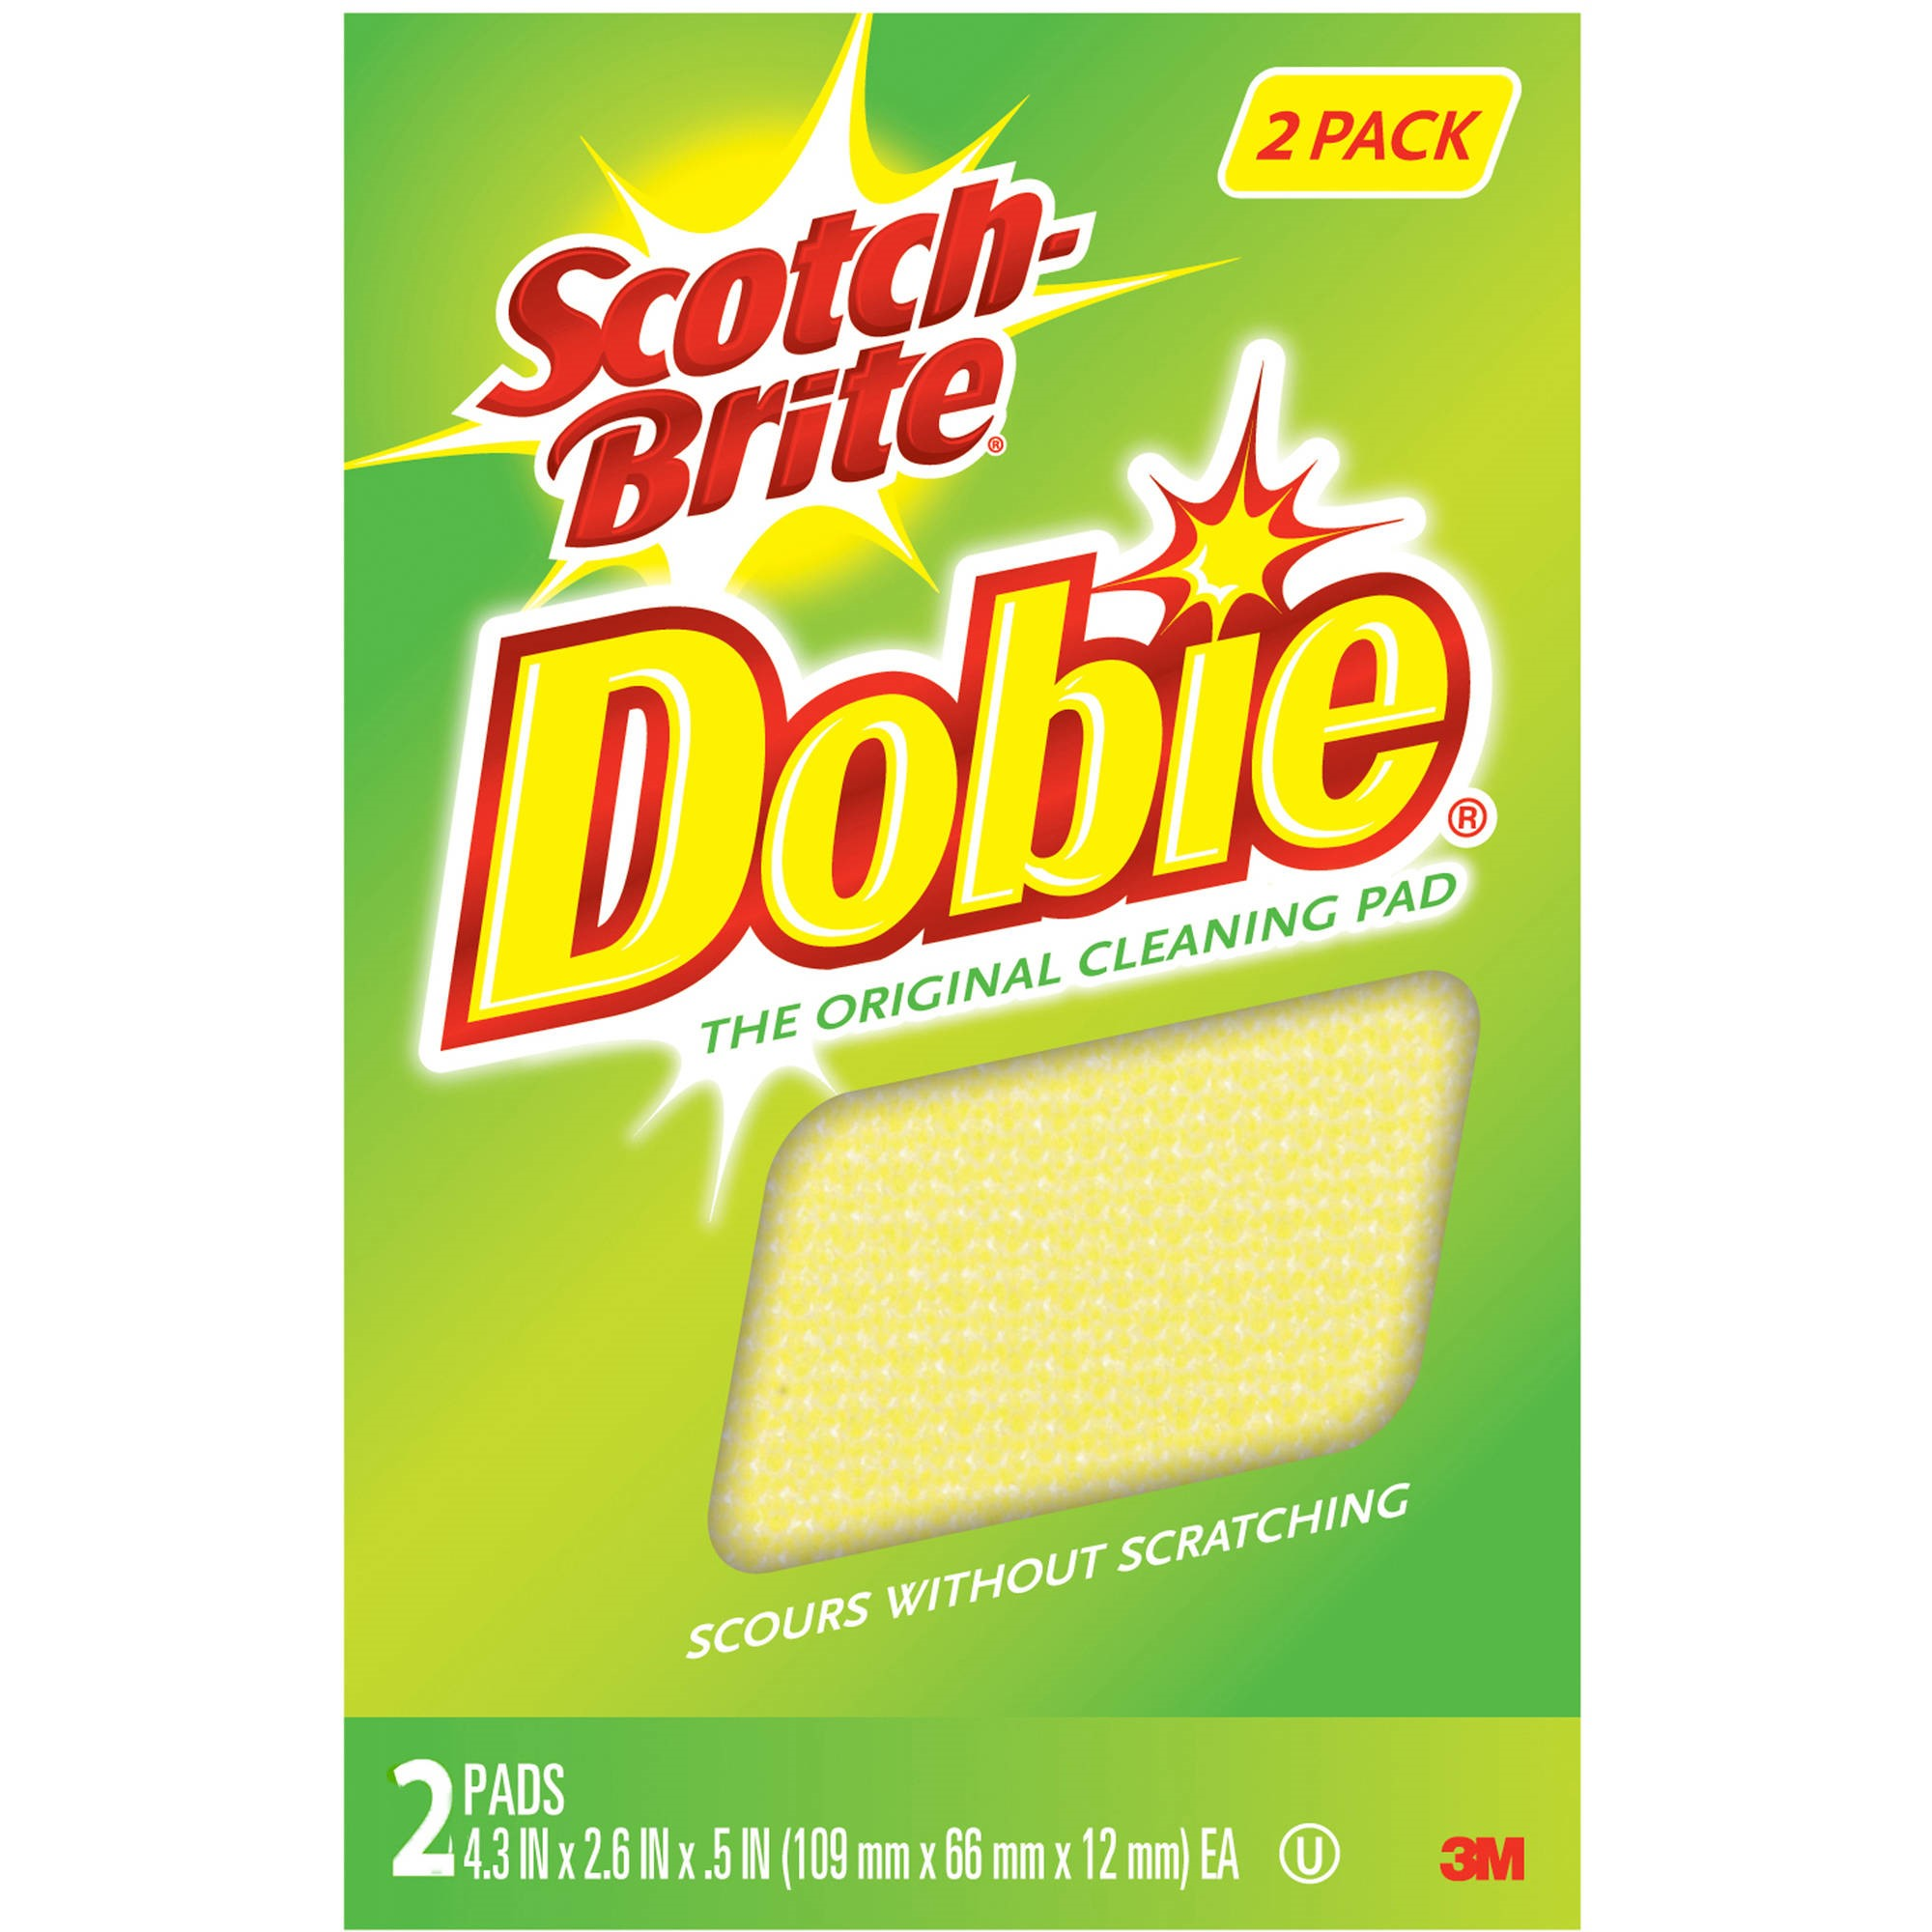 Scotch-Brite Dobie Cleaning Pad Twin Pack, 2 Pads per Pack